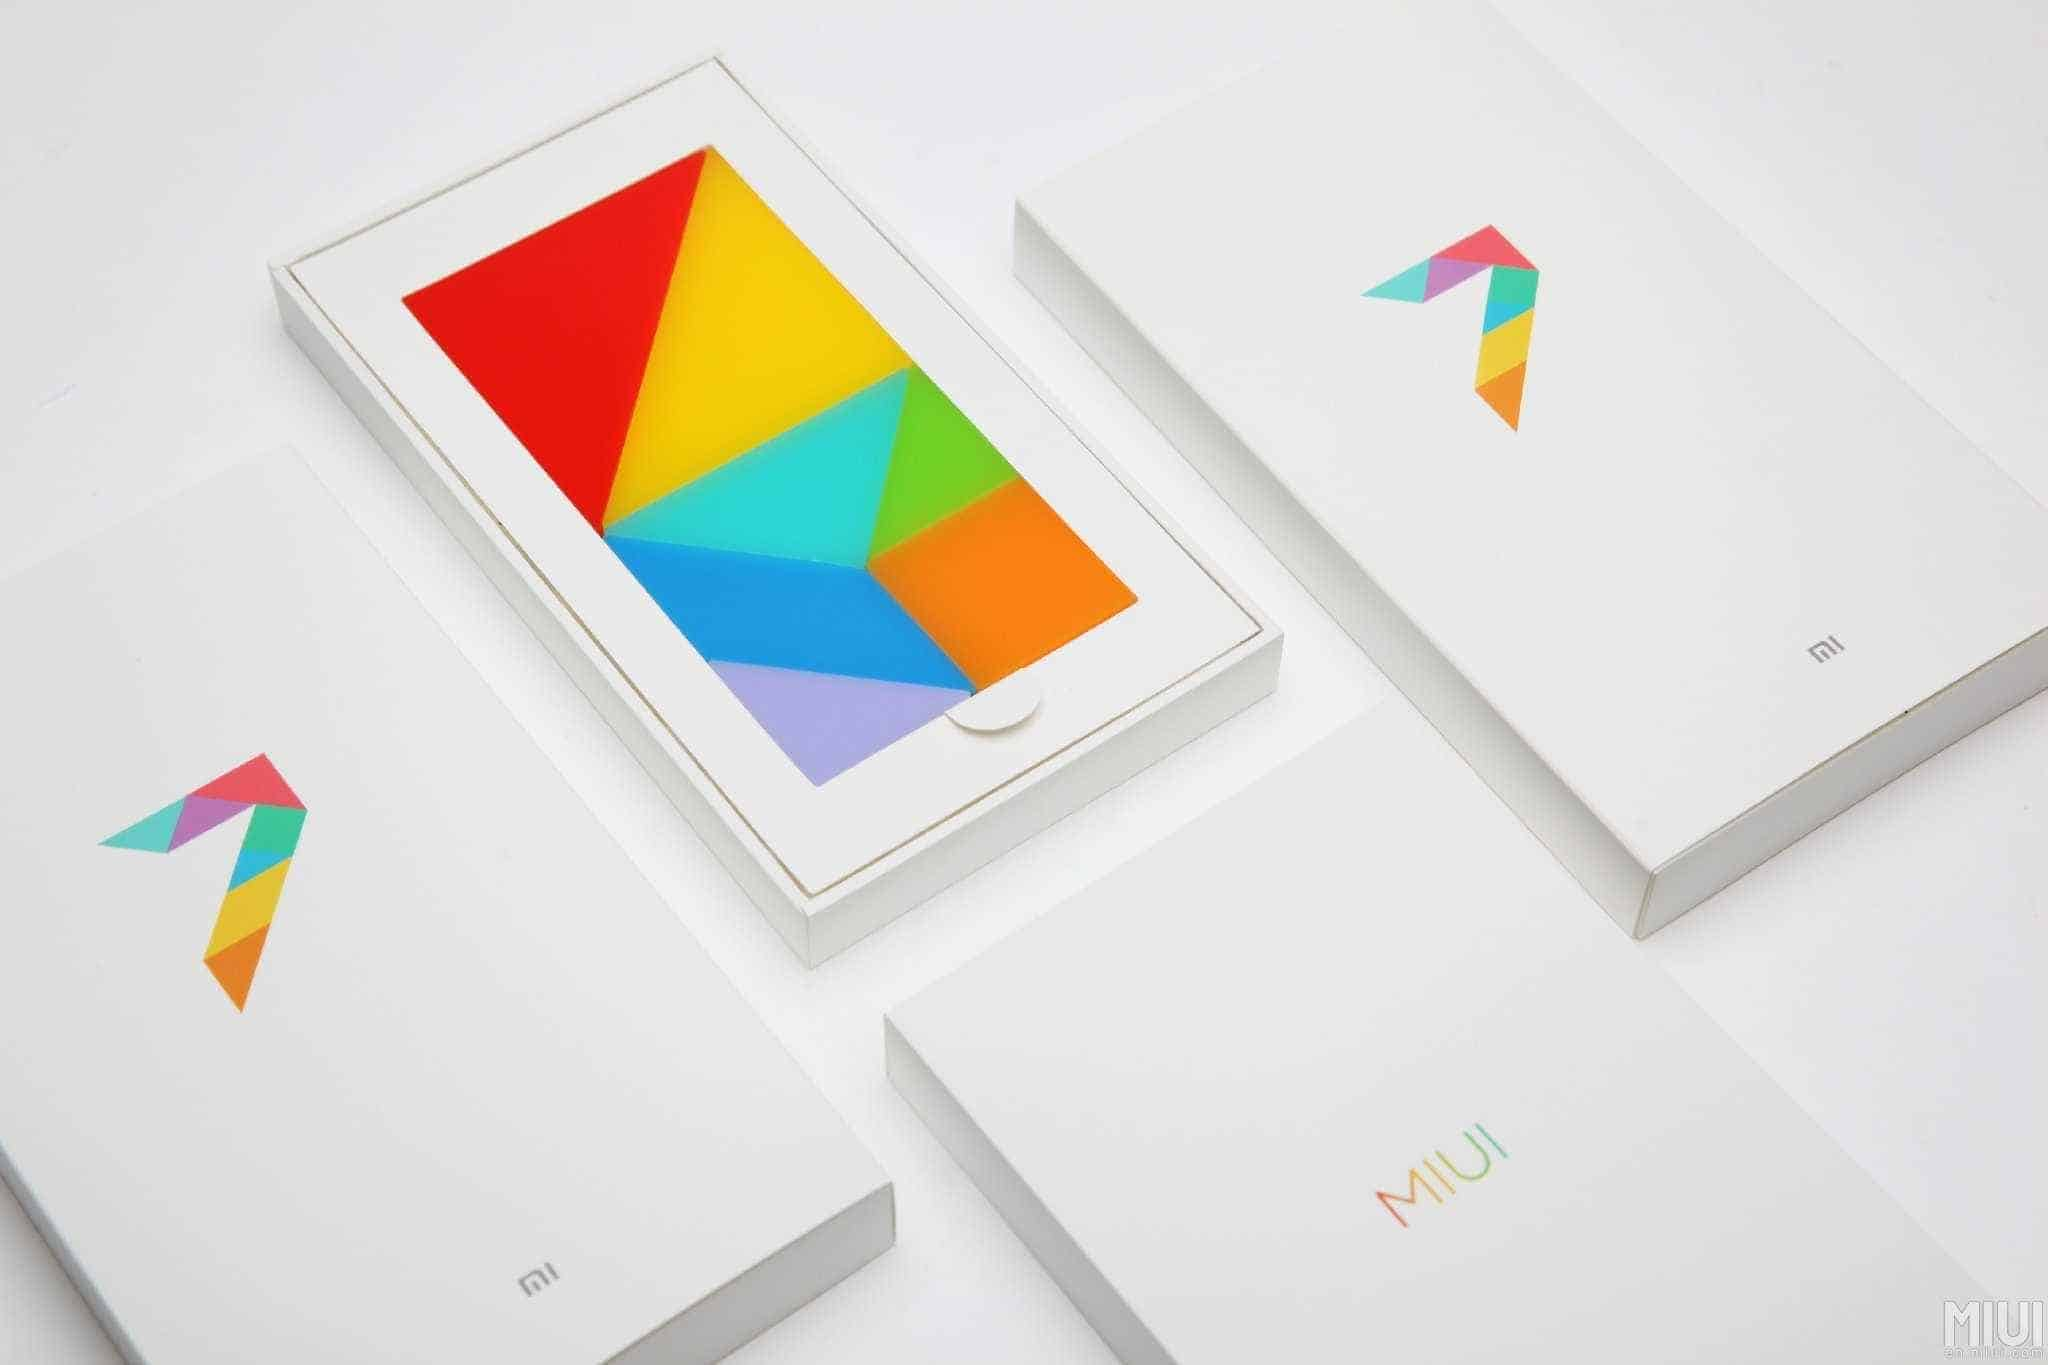 How to Install MIUI 7 Global ROM on Xiaomi Smartphones